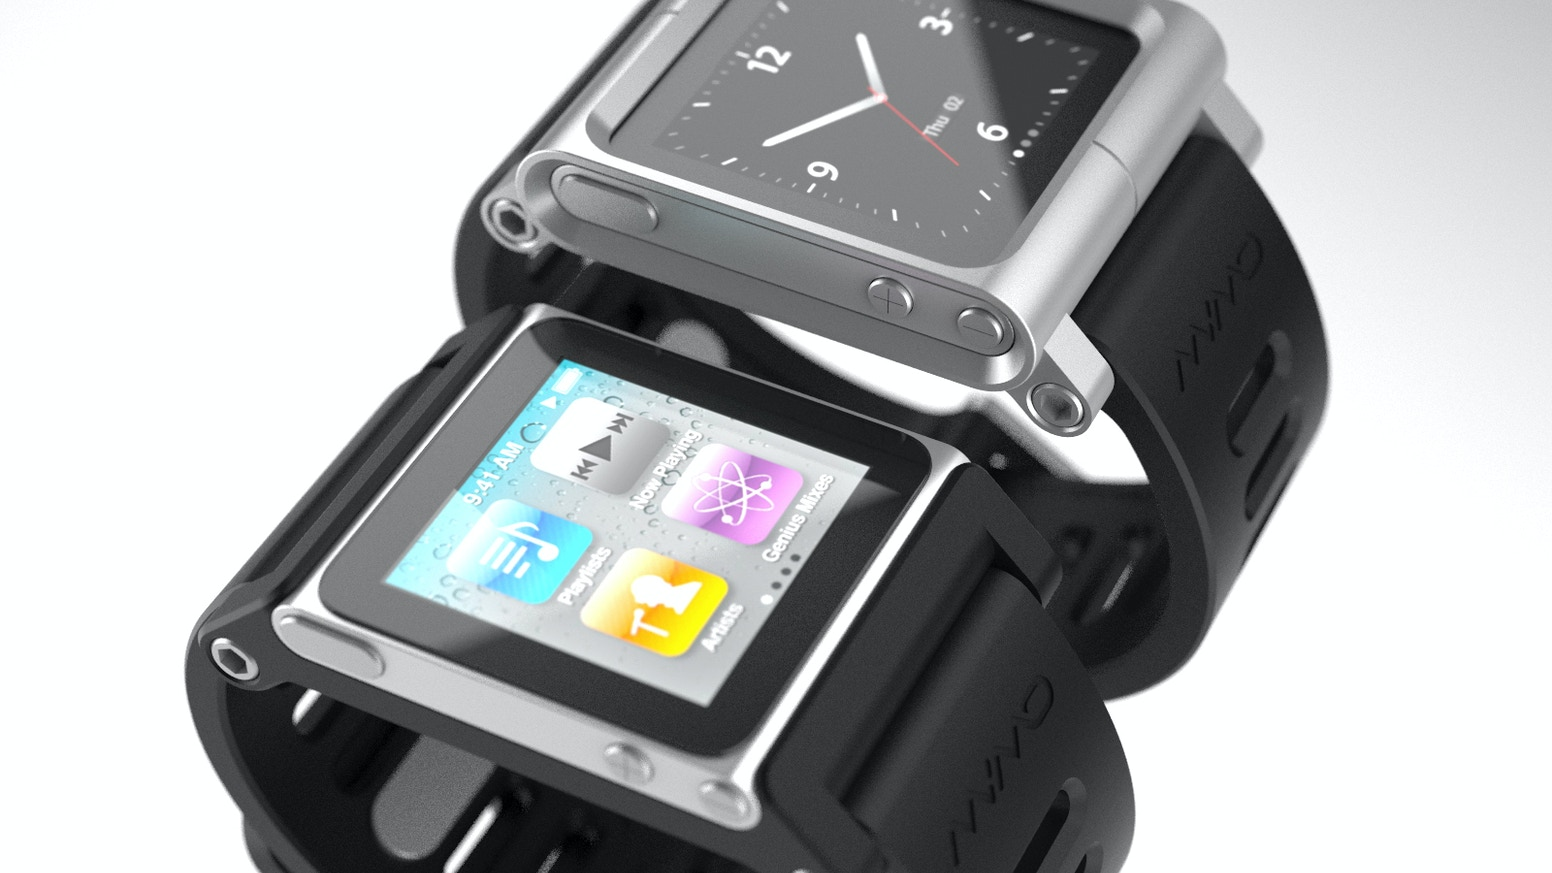 Transform Your Ipod Nano Into The World S Coolest Multi Touch Watches With Tiktok Lunatik